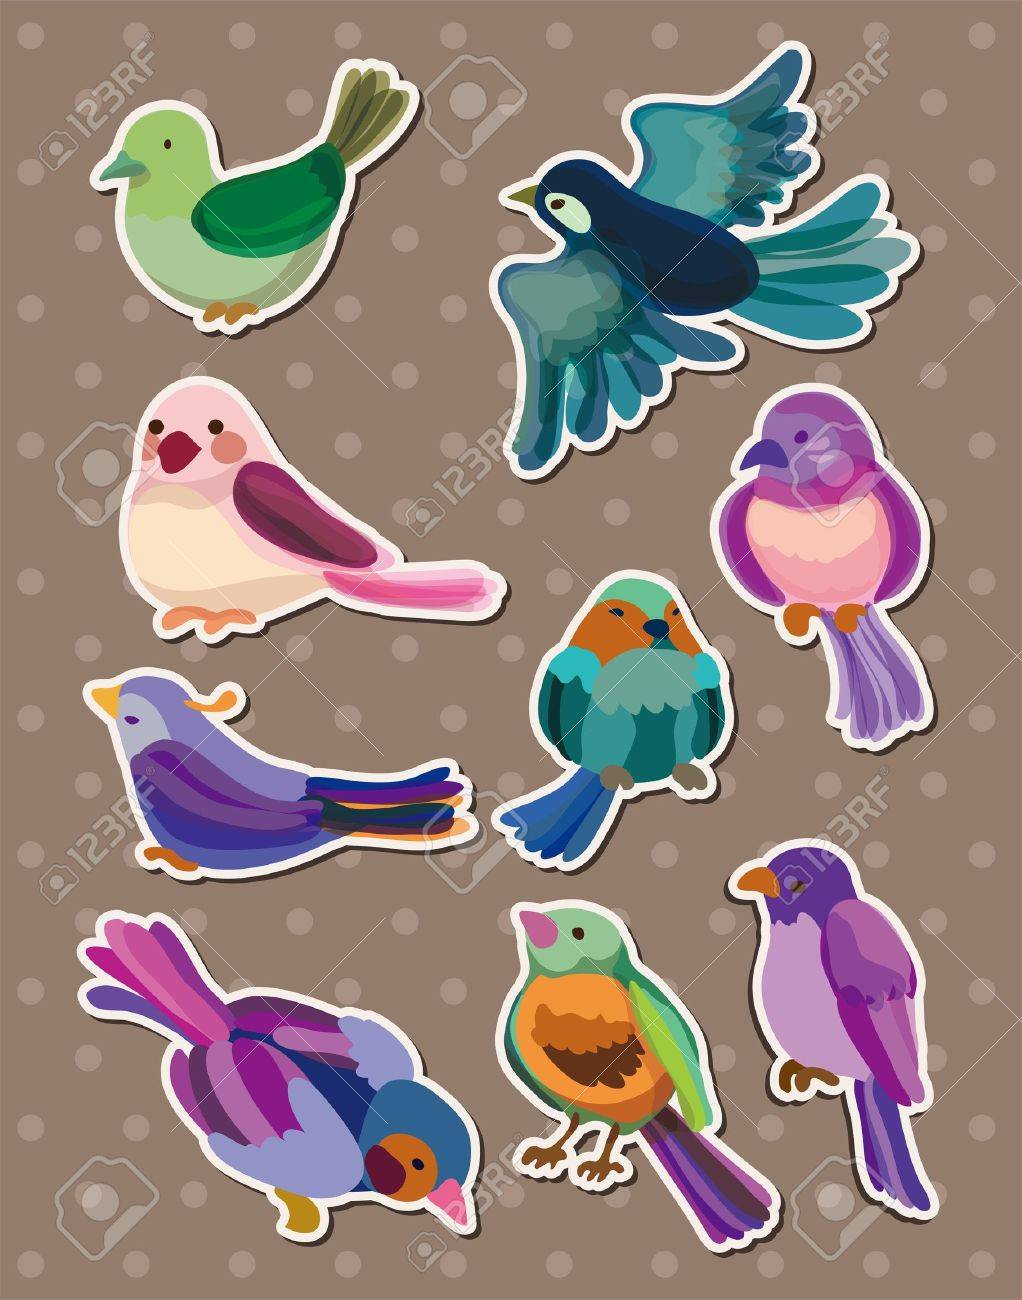 bird stickers Stock Vector - 13122077